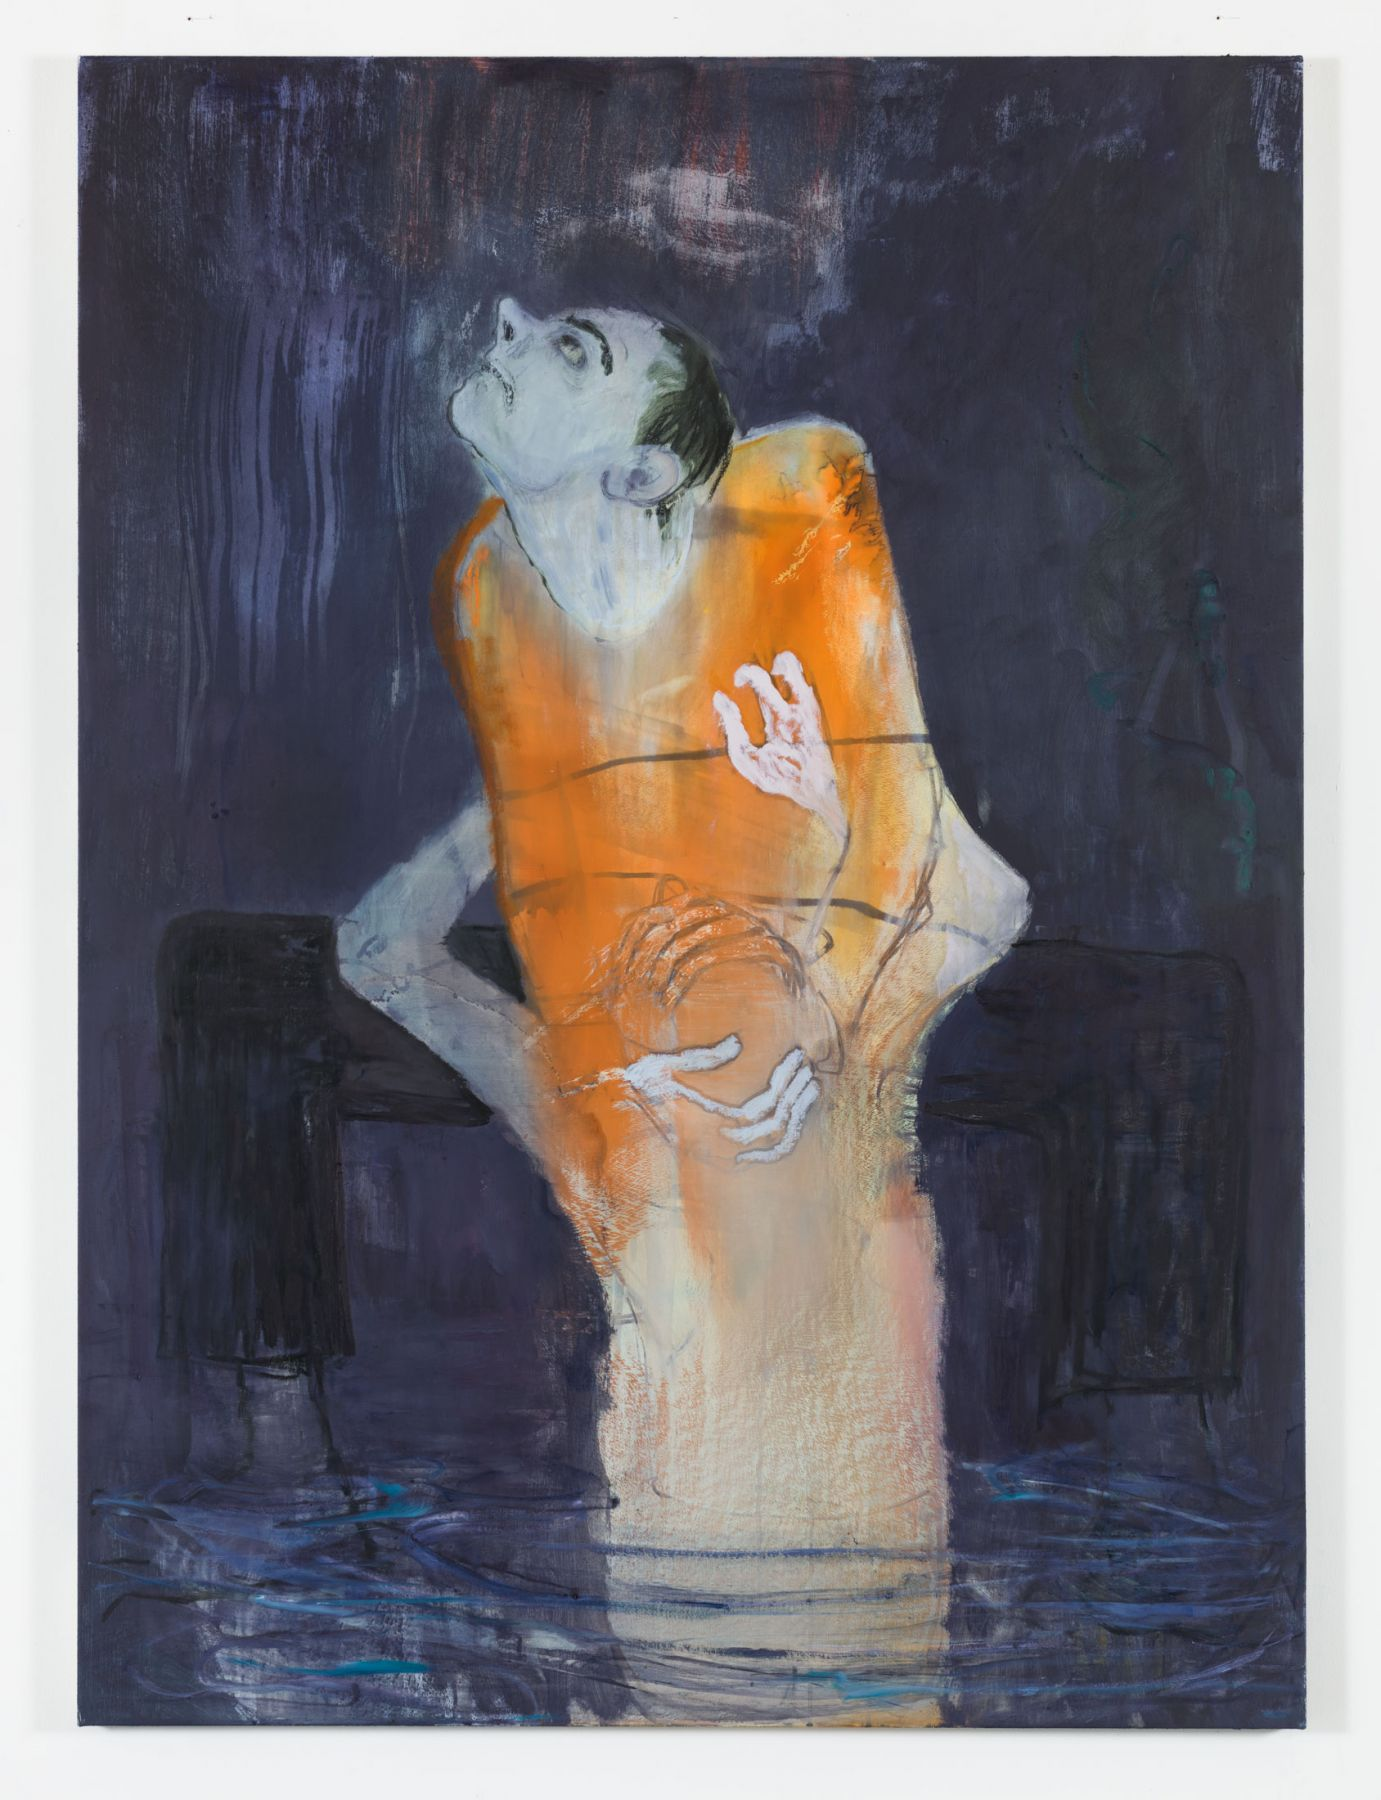 Sanya Kantarovsky, On Them, 2019